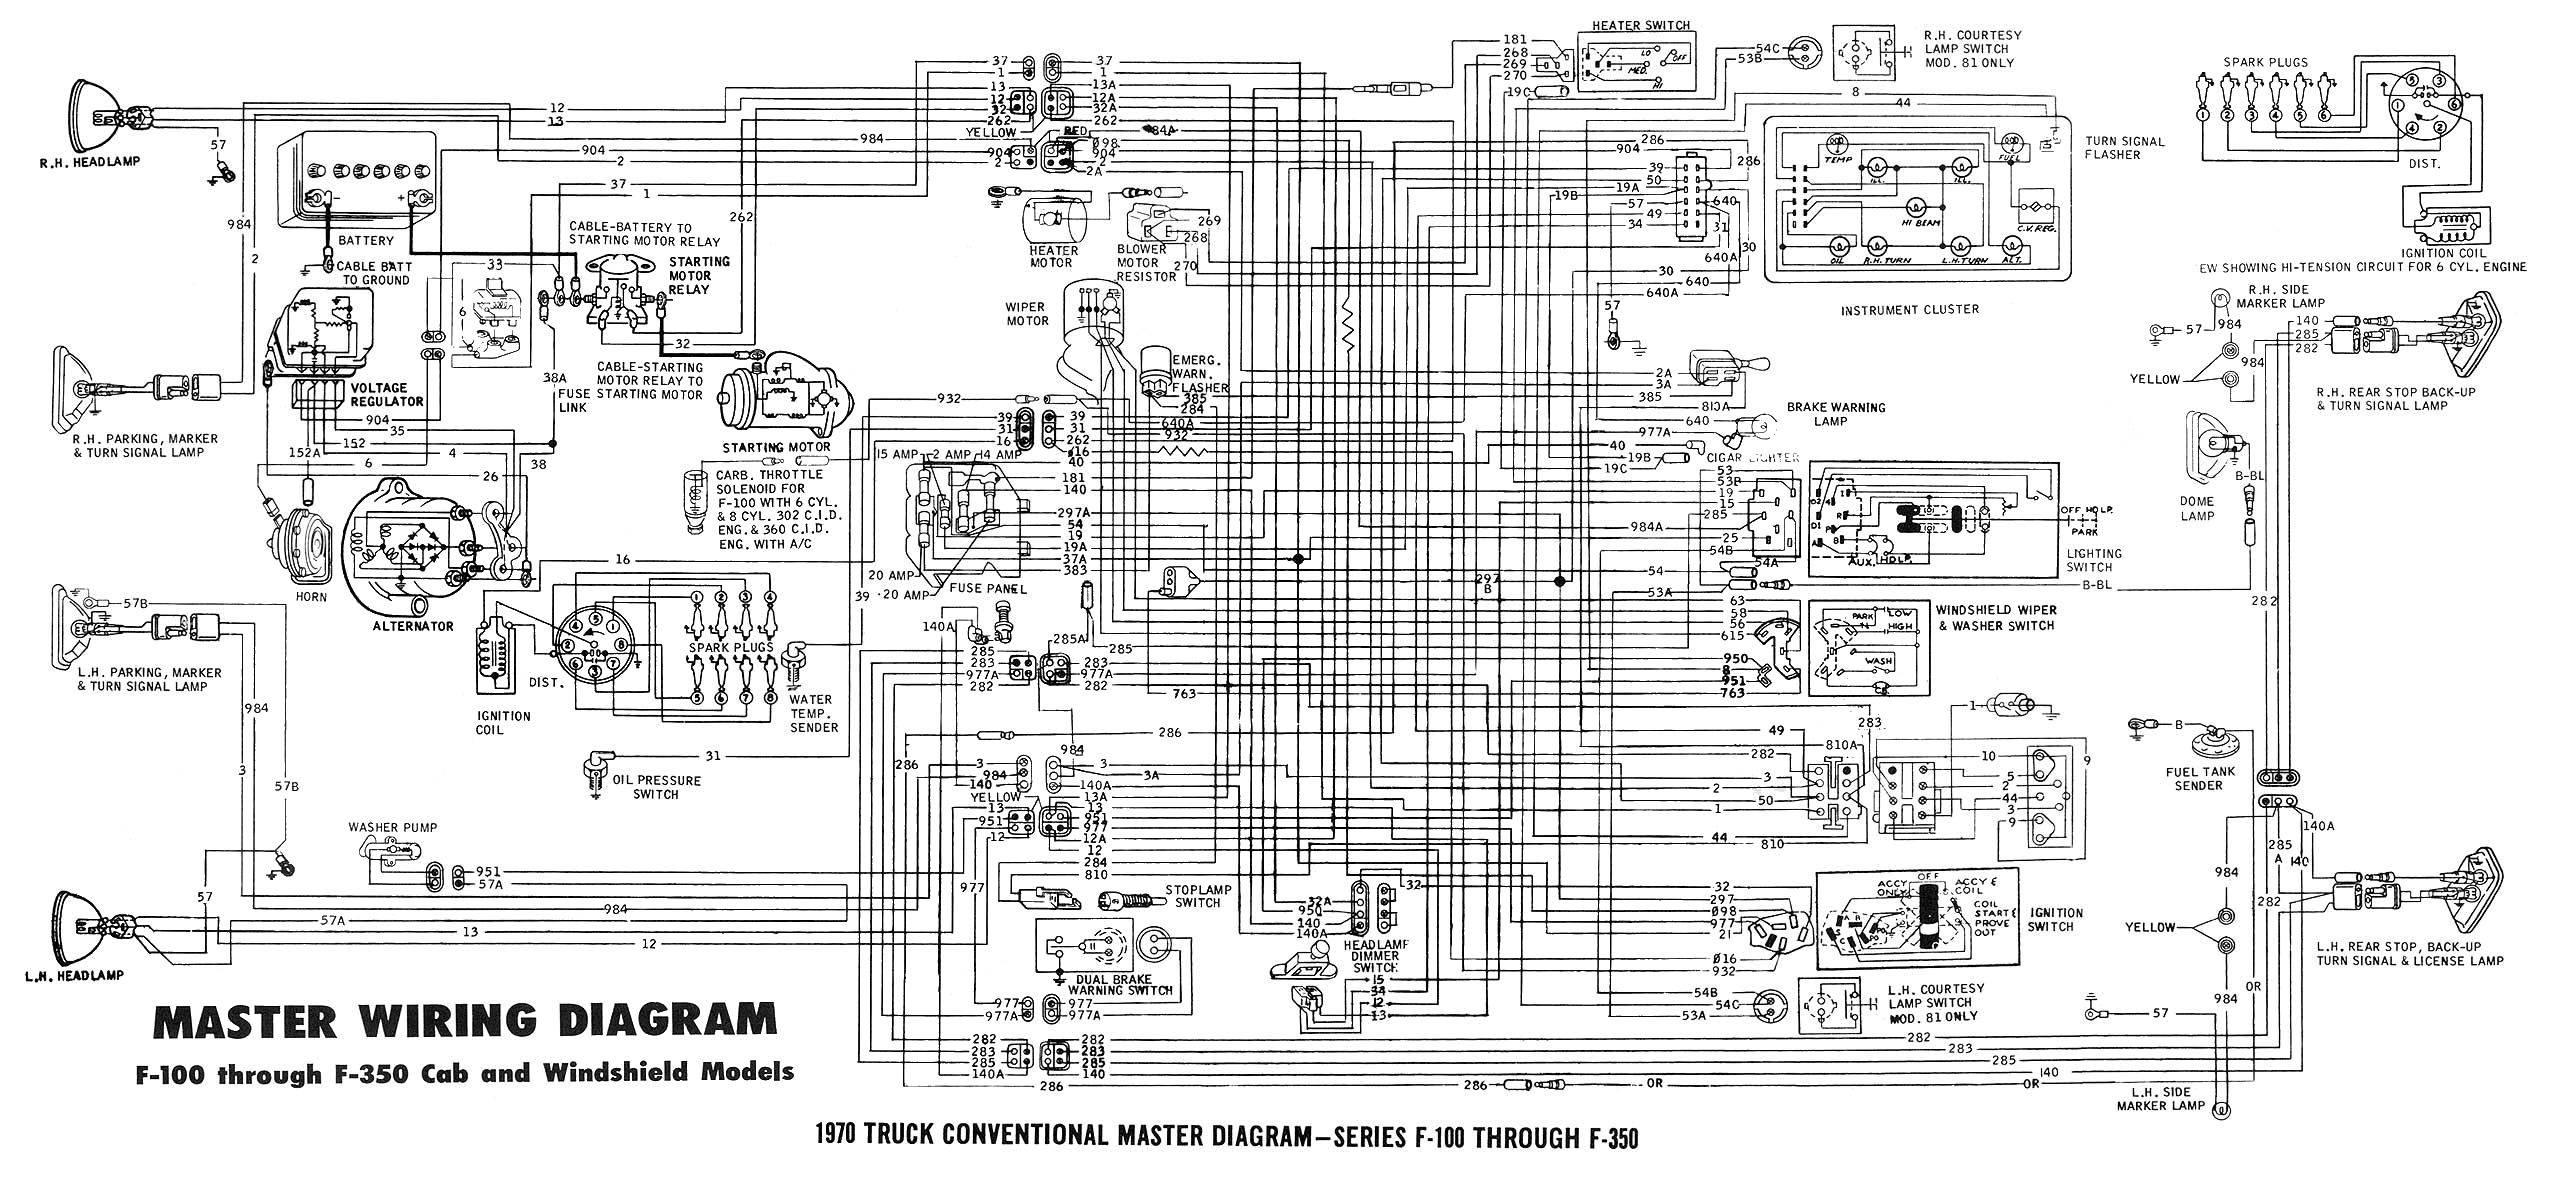 van wiring diagram ford e wiring diagram ford wiring diagrams online rh frontq tripa co Ford Truck Wiring Diagrams Guitar Wiring Diagrams 2 Pickups